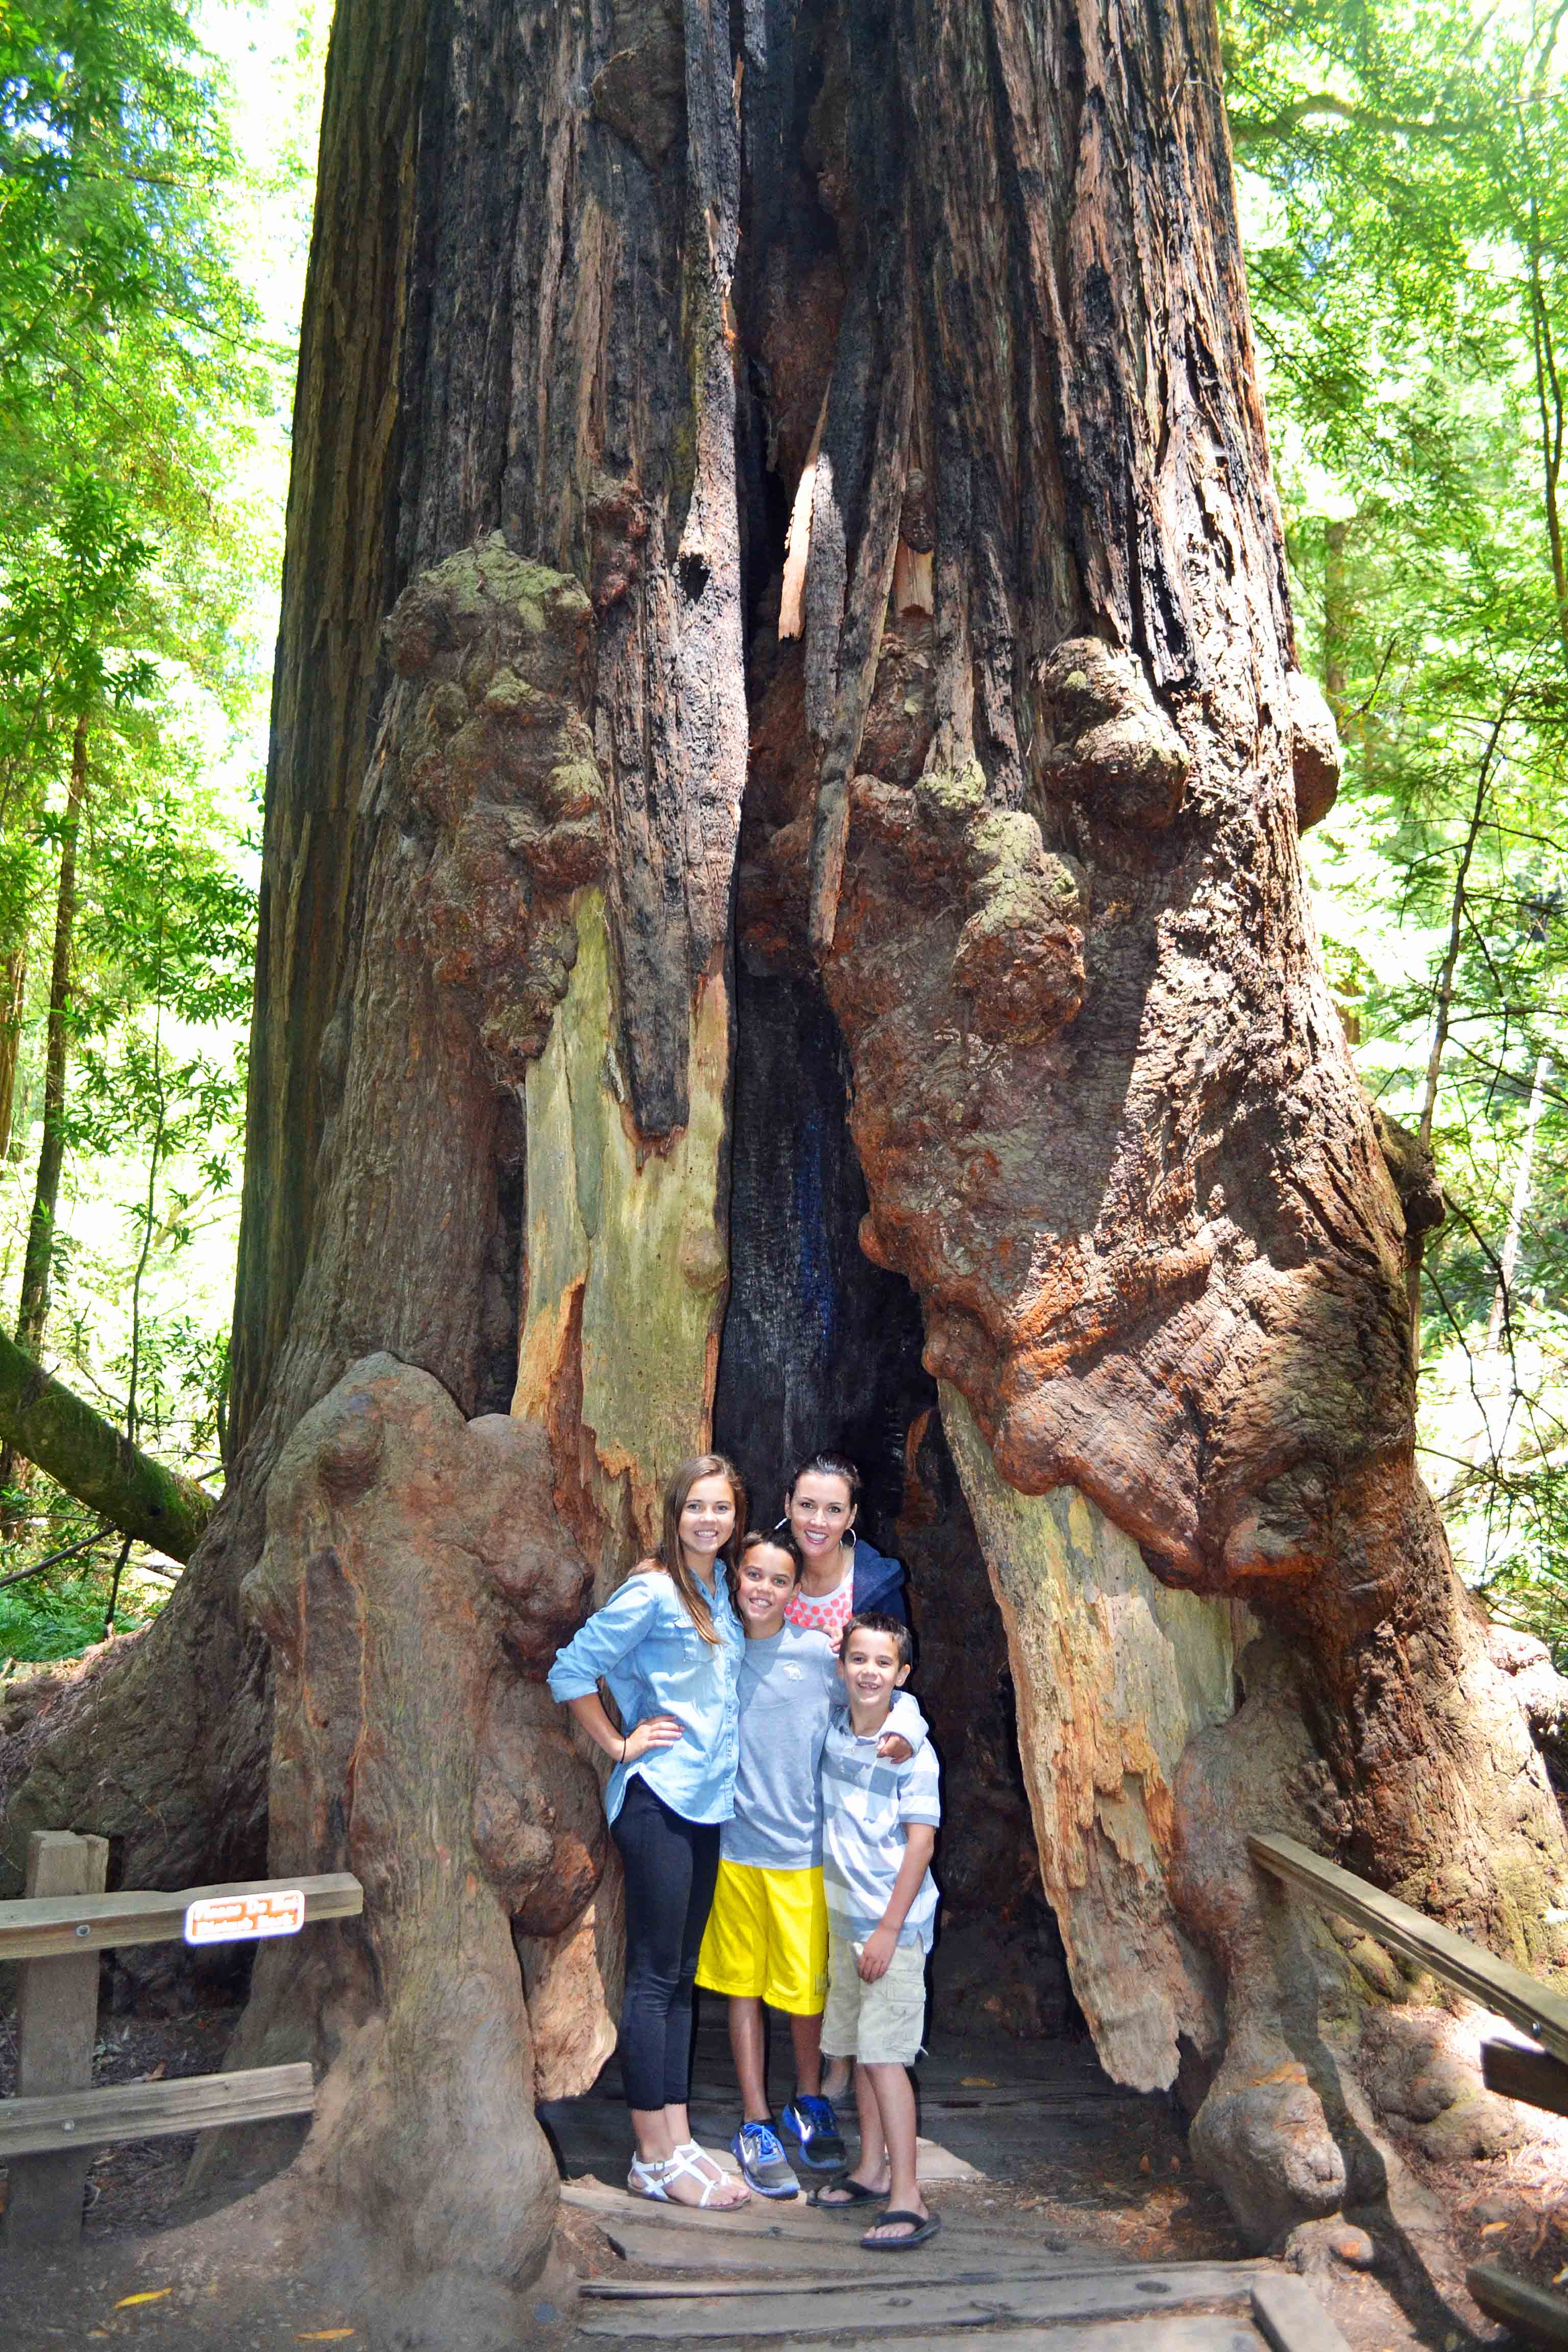 Muir Woods California Pacific Highway 1 Road Trip Guide